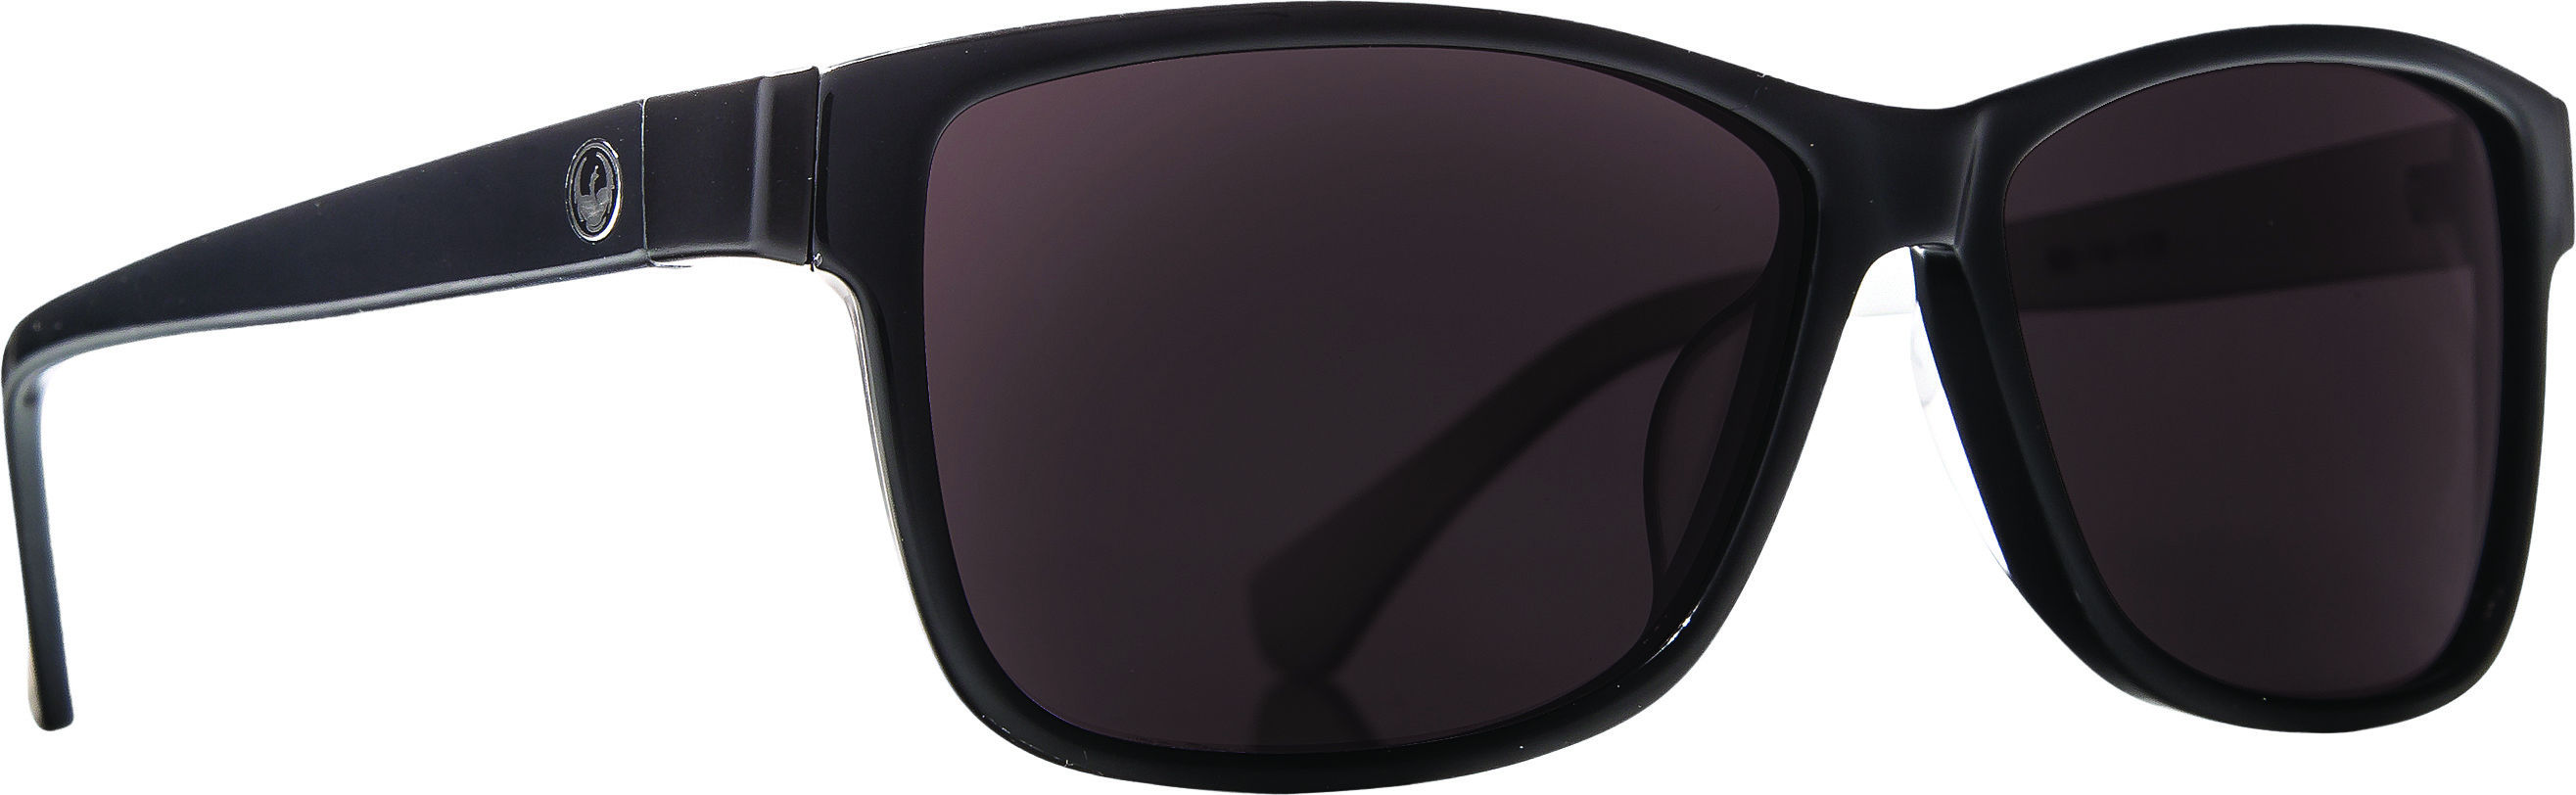 Exit Row Sunglasses Jet Black W/Grey Lens